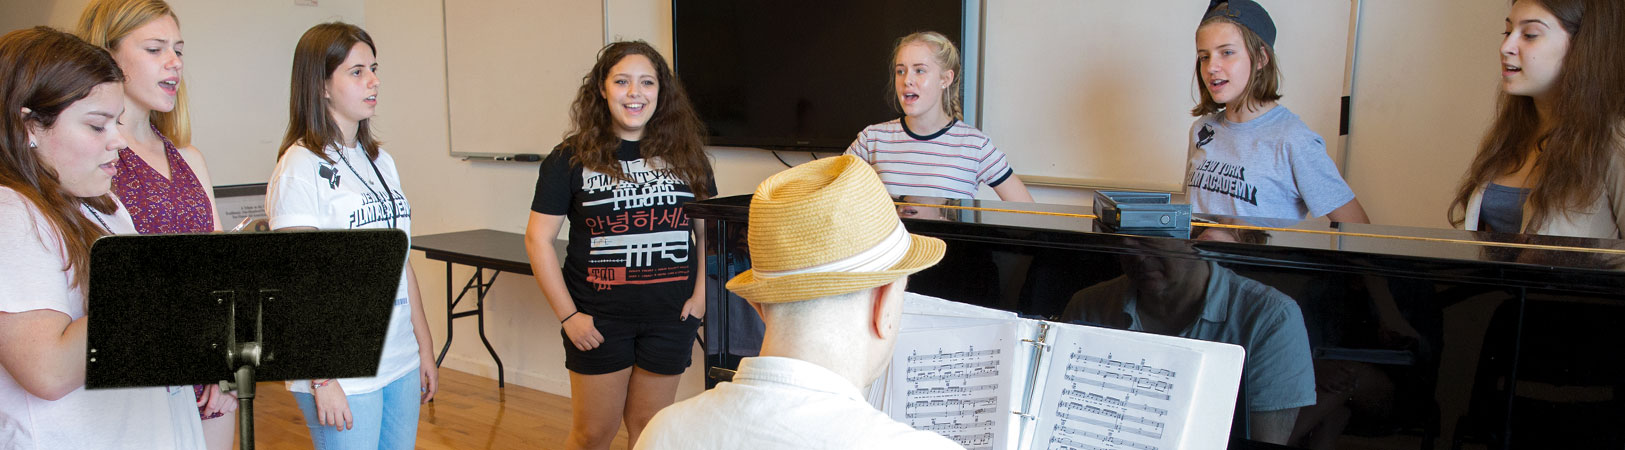 NYFA Musical Theatre students practicing with a pianist